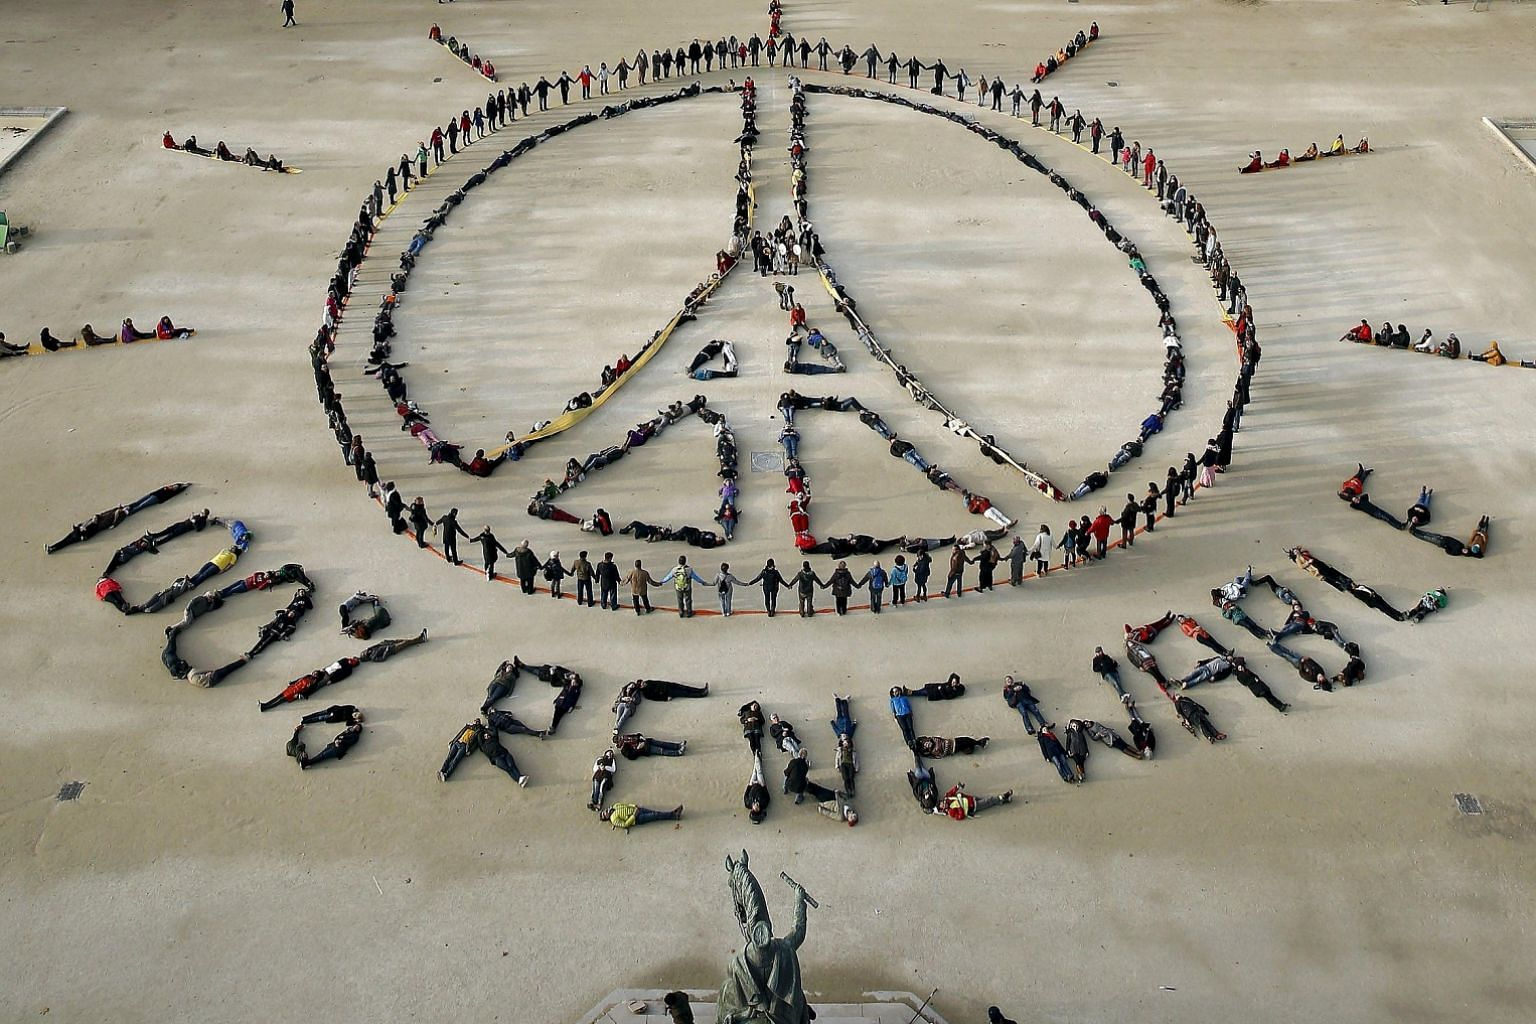 Environment activists forming a message of peace in front of the Eiffel Tower in Paris on Sunday as the World Climate Change Conference took place in the city. The writer says one of the great challenges in the push to save the planet is that climate